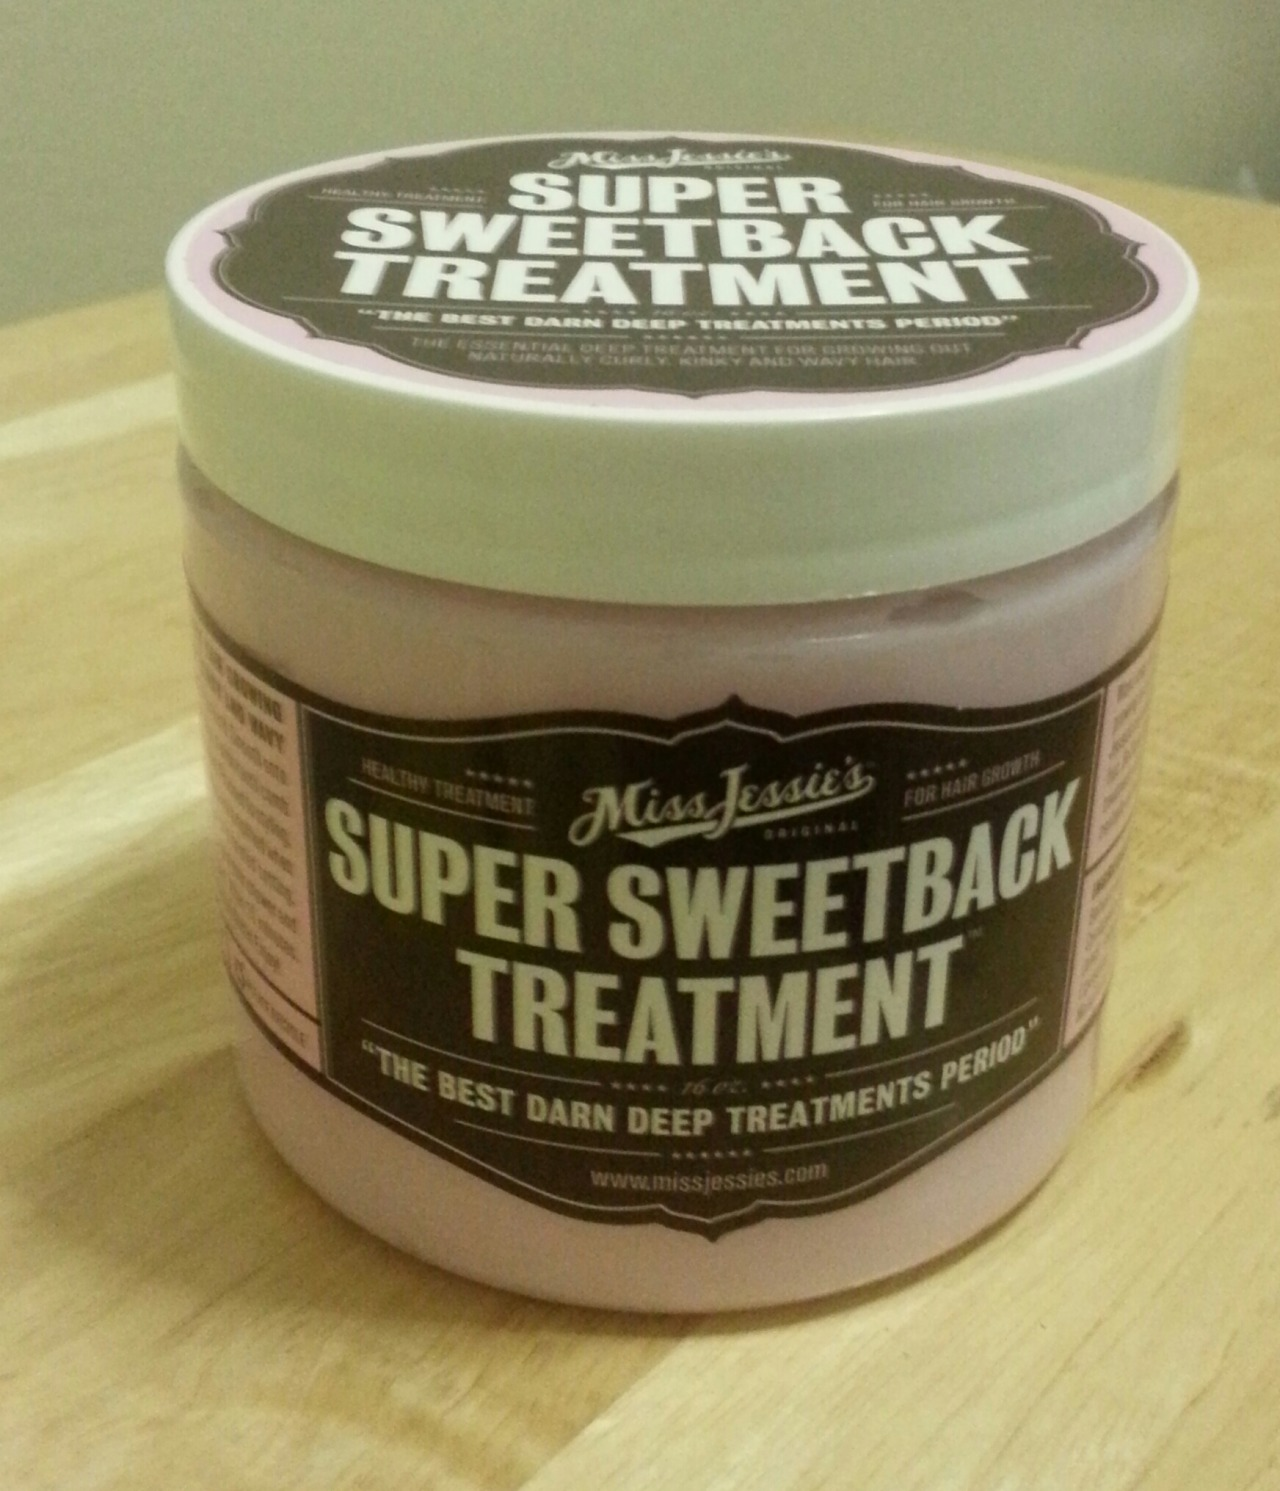 Natural Hair on The Corner- Miss Jessies Super Sweetback Treatment (Winter Hair Care) So the lovely ladies over at Miss Jessies has done it again. I love the Super Sweetback Treatment. Its a deep conditioner that has my hair absolutely soft and smelling oh so sweet. No, like seriously, its been 3 days since I used it and I can still smell the fragrance in my hair. Its not a harsh or overbearing smell. Its a little yummy. Someone will want to snuggle close and its cold as hell in NYC right now so that may be a goal of yours. Anyway, the temperatures outside are harsh and you need to make sure your hair is as strong as possible. You want to combat dryness and make sure there's no breakage from your winter accessories or just plain ole neglect. Go out and grab this. I think you'll enjoy it. xo Brandis